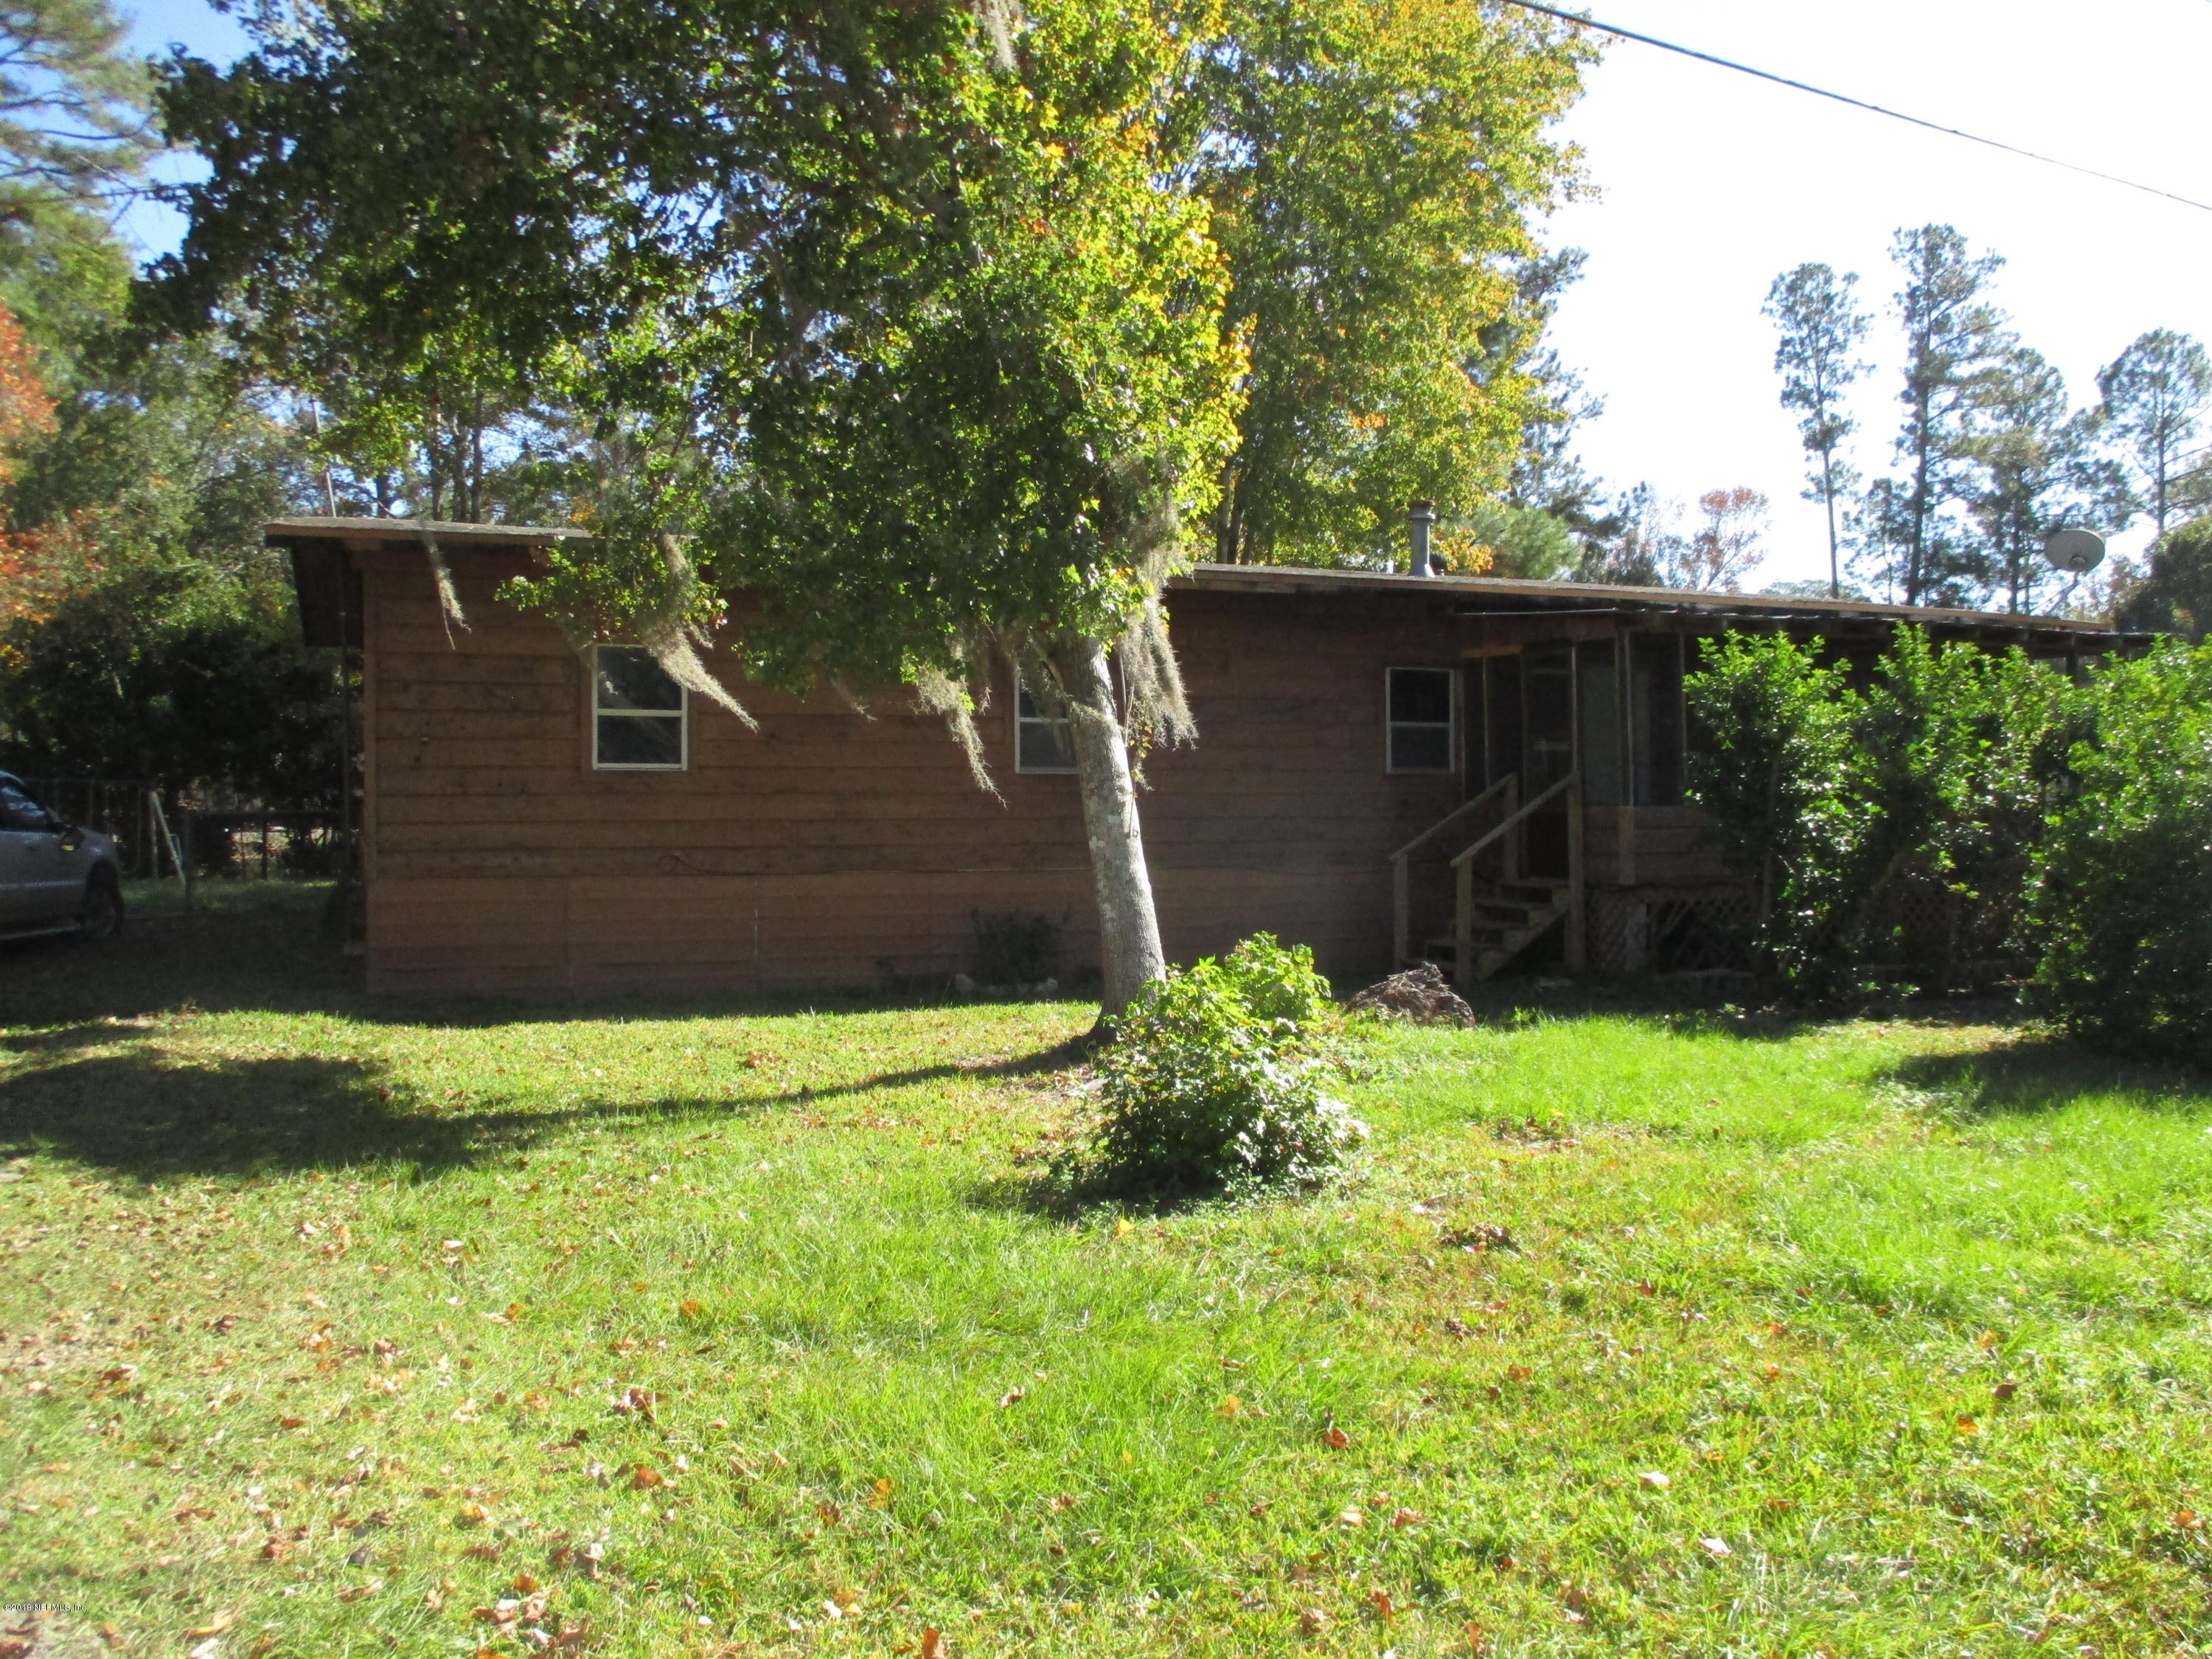 6736 162ND, STARKE, FLORIDA 32091, 3 Bedrooms Bedrooms, ,2 BathroomsBathrooms,Residential,For sale,162ND,1027669